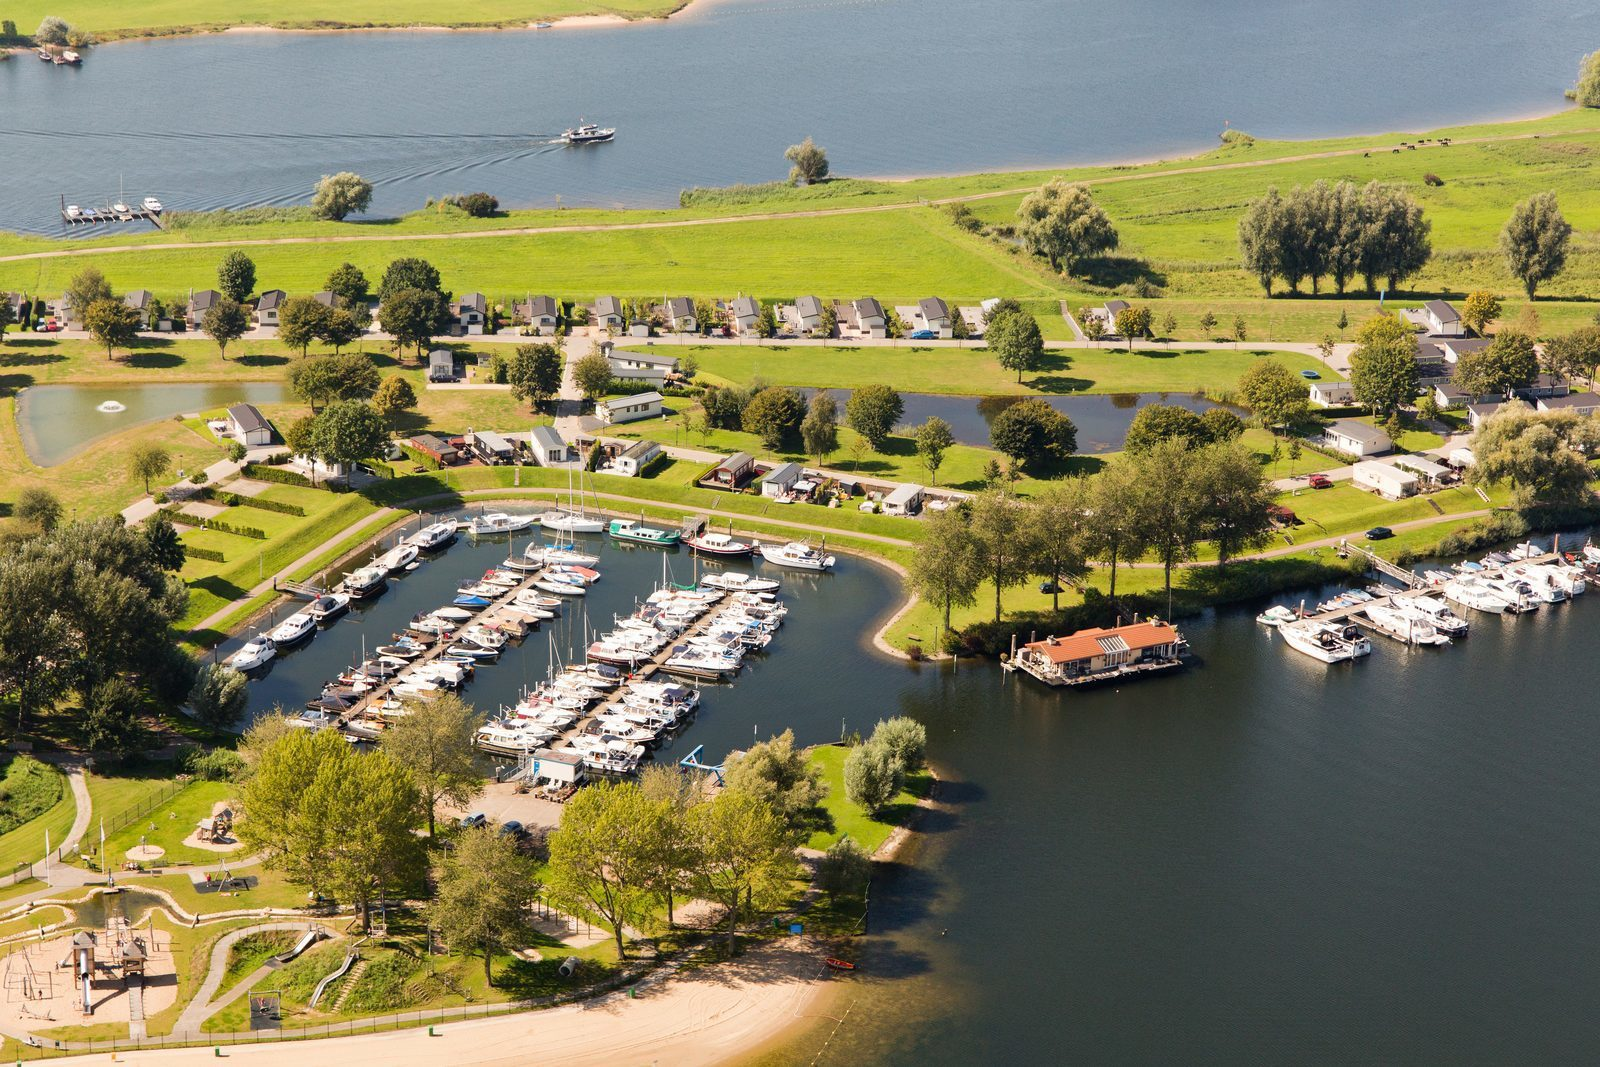 Aerial photo of Holiday park the Esmeer